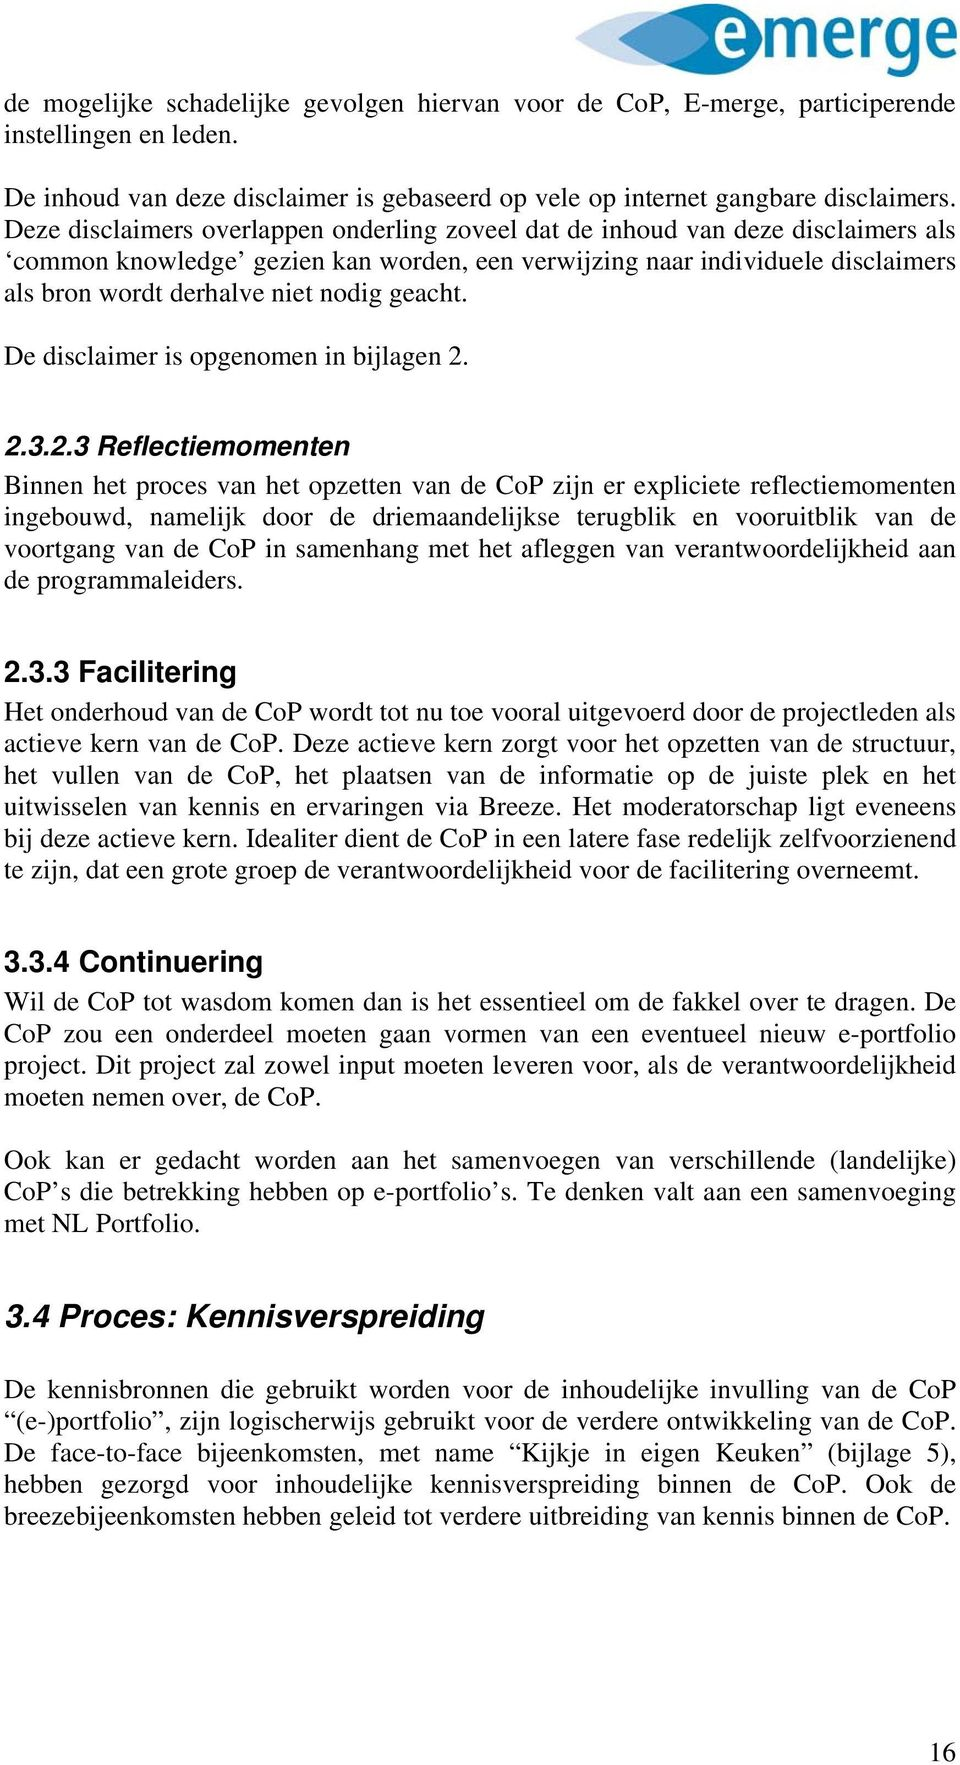 De disclaimer is pgenmen in bijlagen 2.